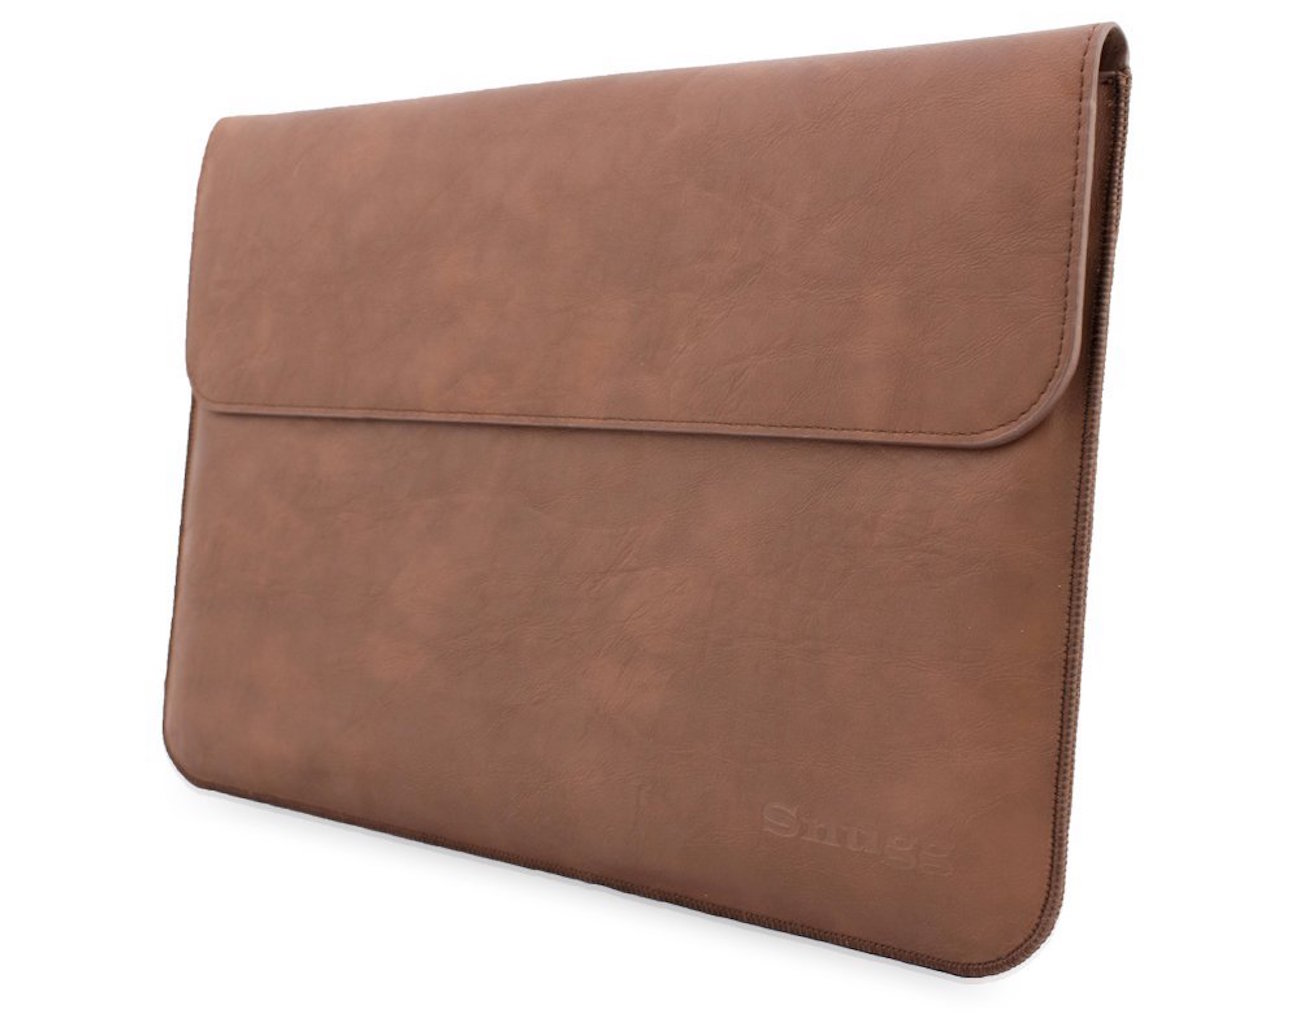 snugg-leather-sleeve-for-microsoft-surface-3-04